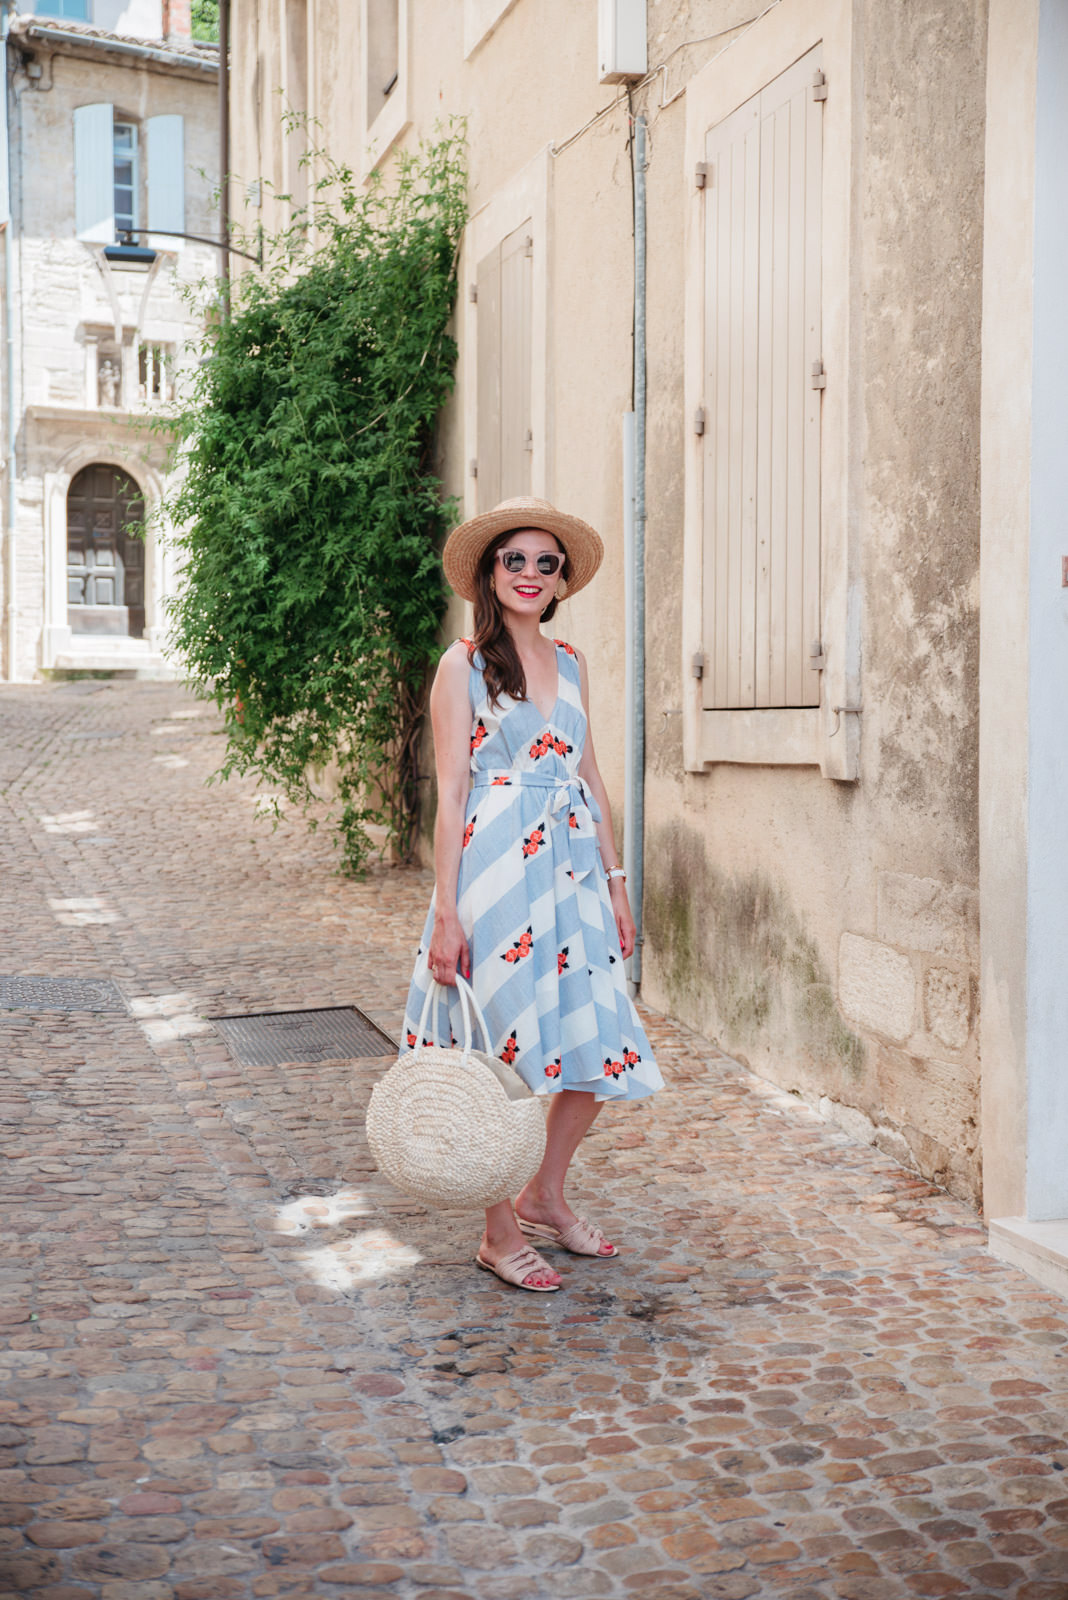 Blog-Mode-And-The-City-Lifestyle-Voyage-Avignon-Mas-Des-Herbes-Blanches-8